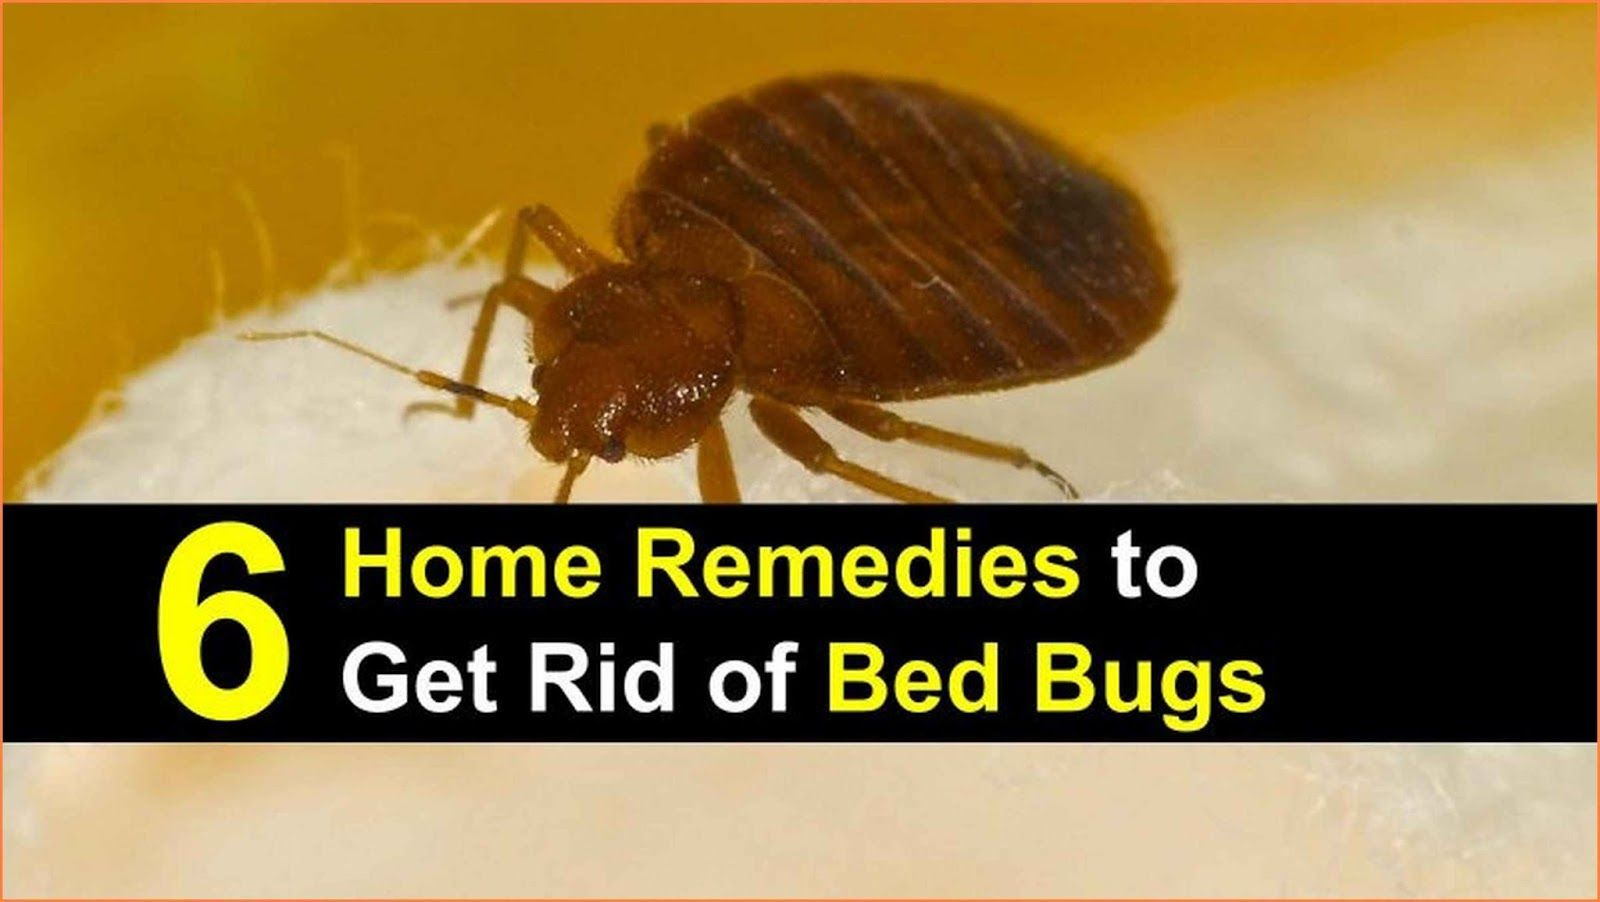 Is There A Home Remedy For Bed Bugs Bed bugs, Rid of bed